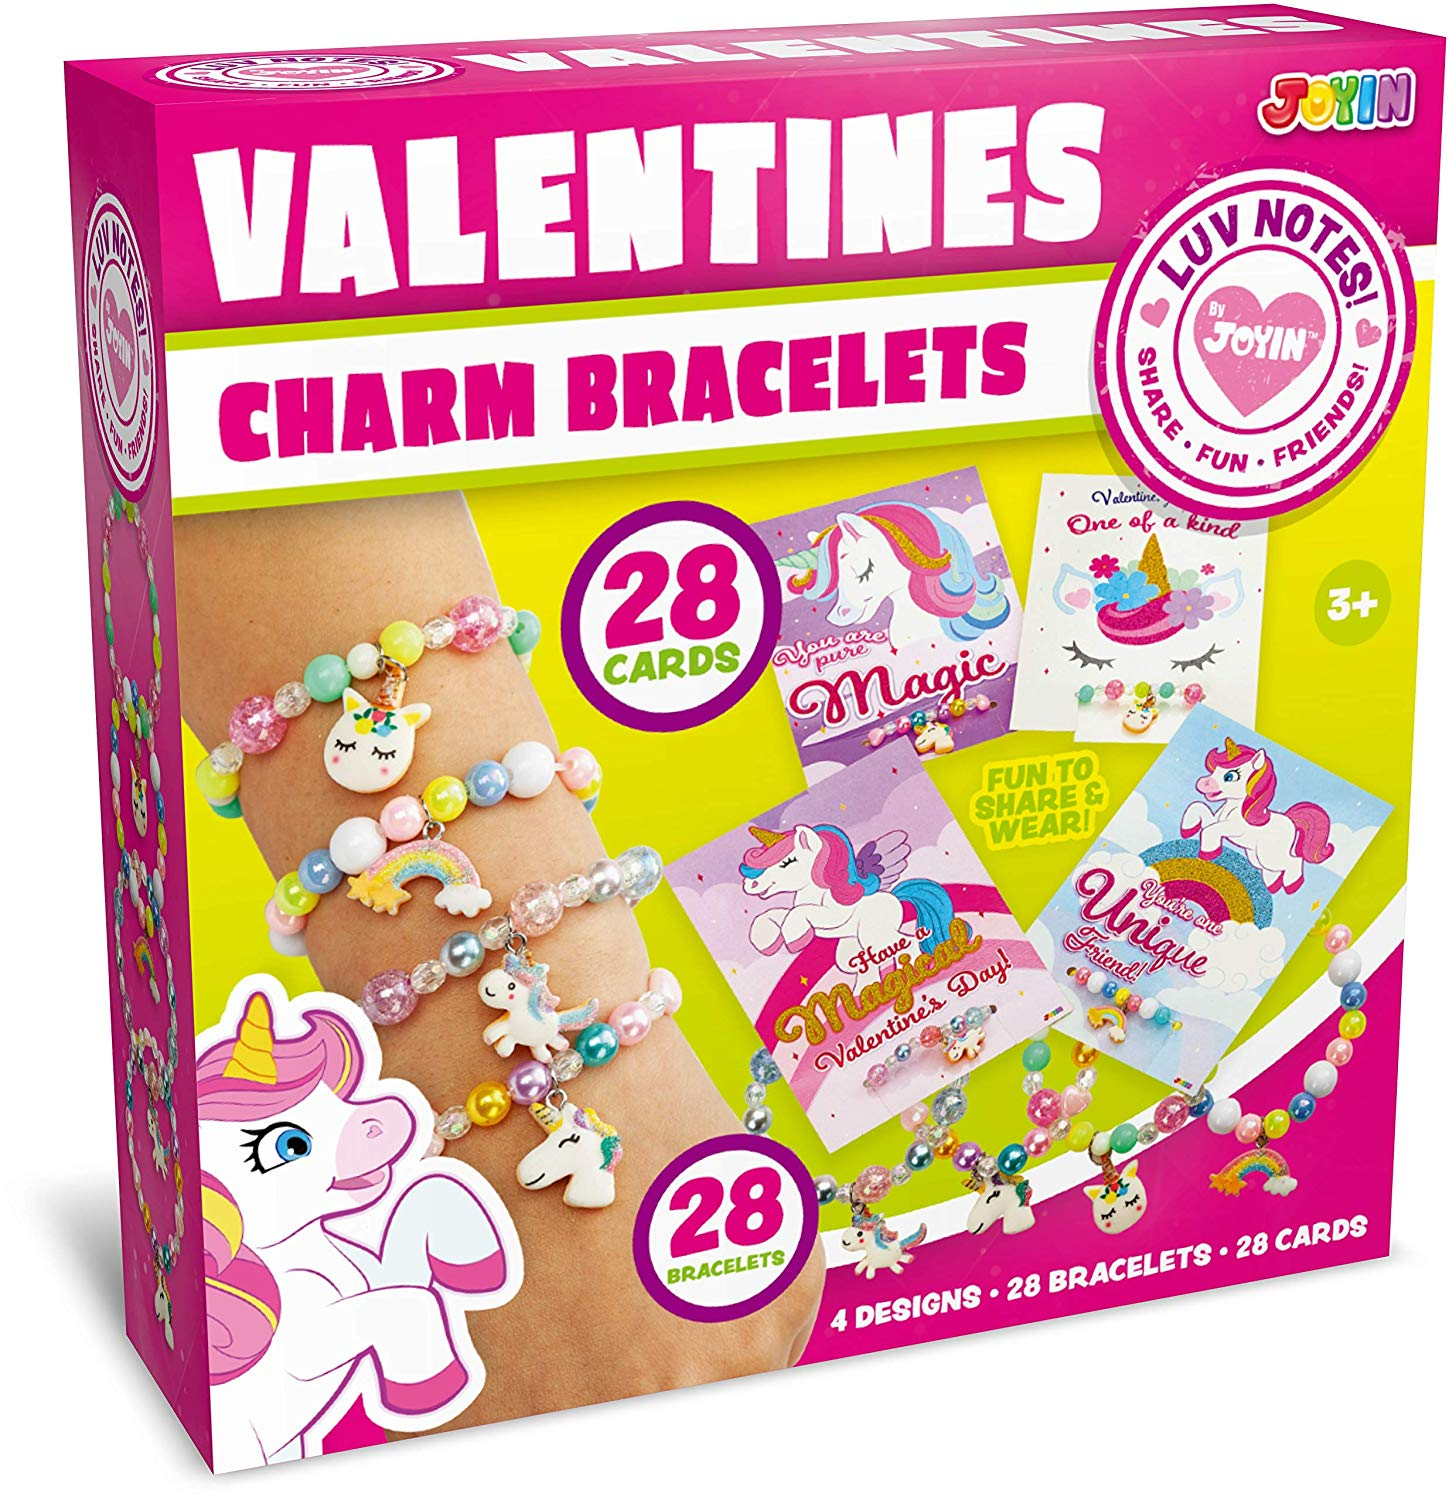 Unicorn Valentines Day Cards with Bracelets